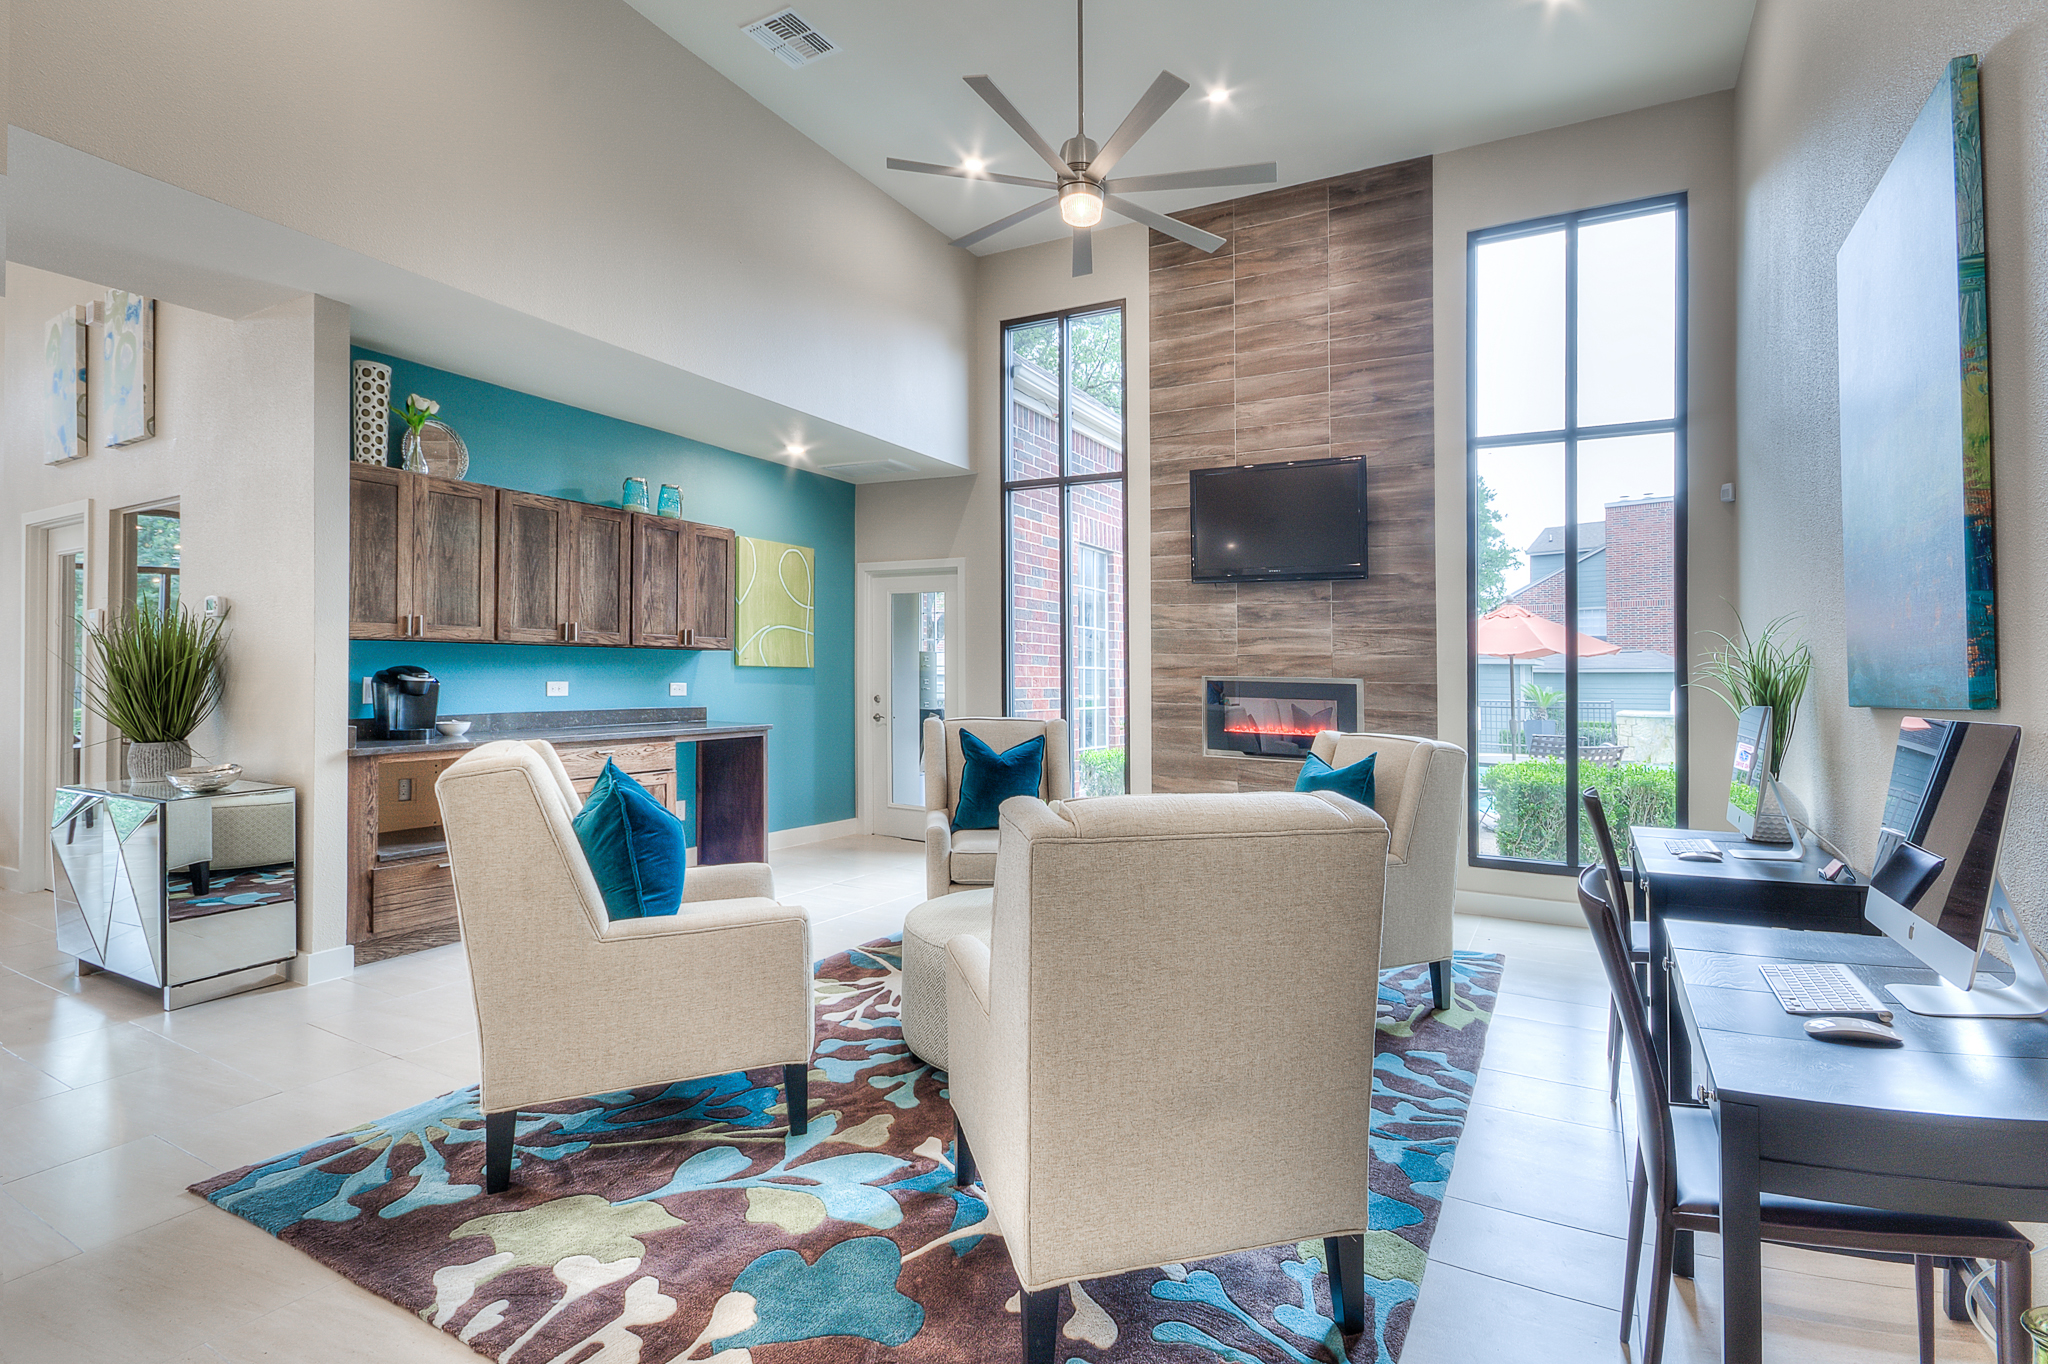 Lobby designed from professional interior designers in Austin, Texas